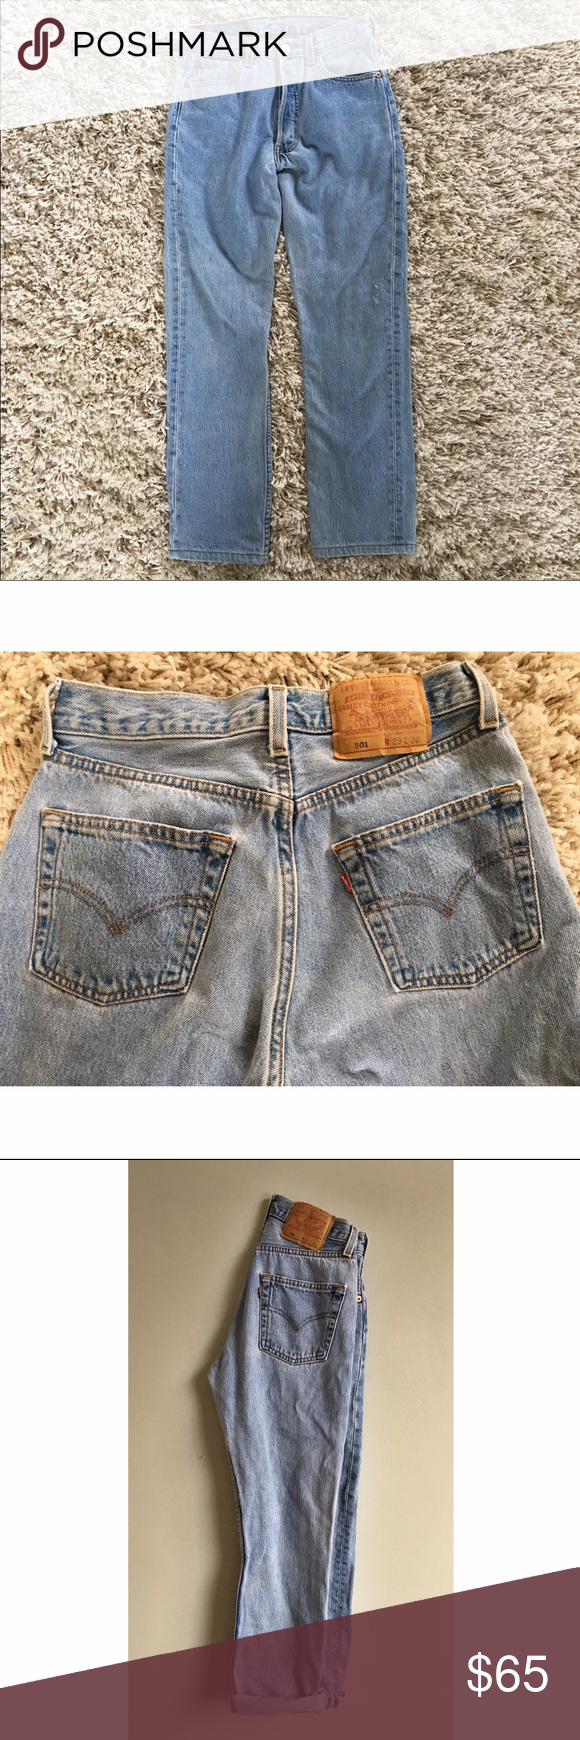 Vintage women's Levi's 501s. Slight slate blue. These vintage 501 Levi's are in great shape, have a super flattering and hip fit. Light slate blue. Size 29 W 30 L. They've shrunk from being washed so might be a bit smaller than a 29. Levi's Jeans Ankle & Cropped